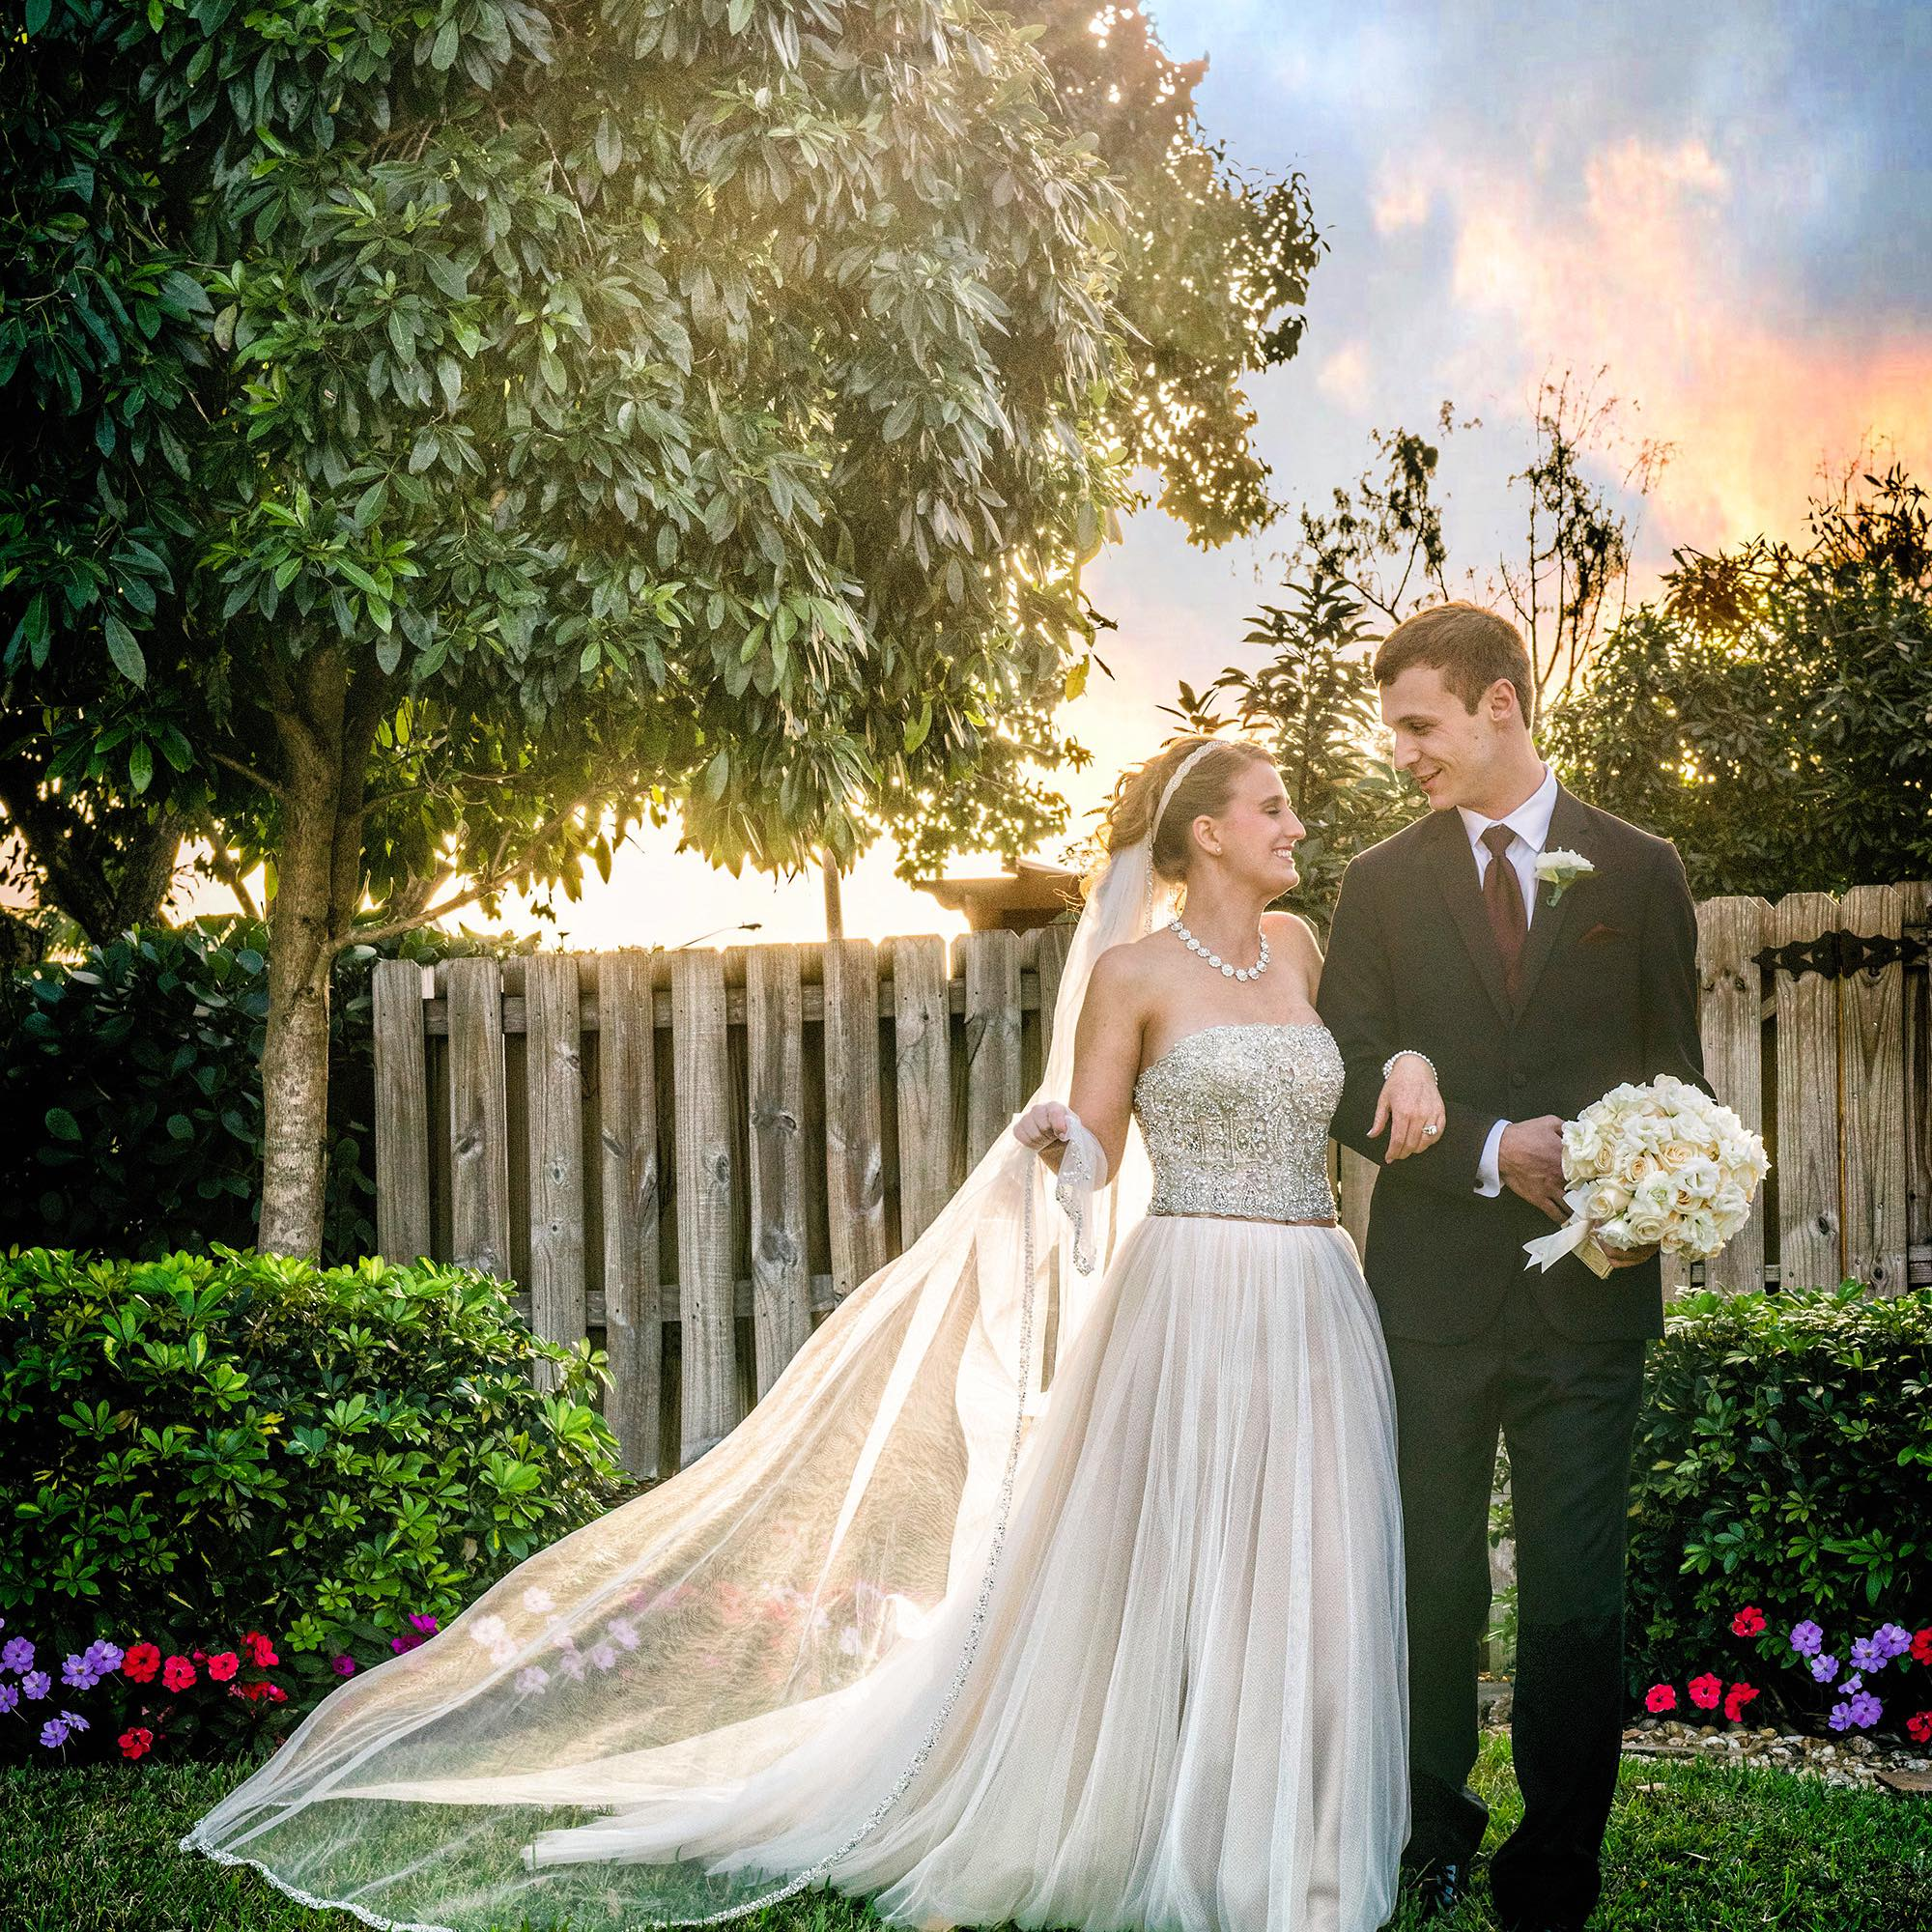 sarah & stuart – backyard vows